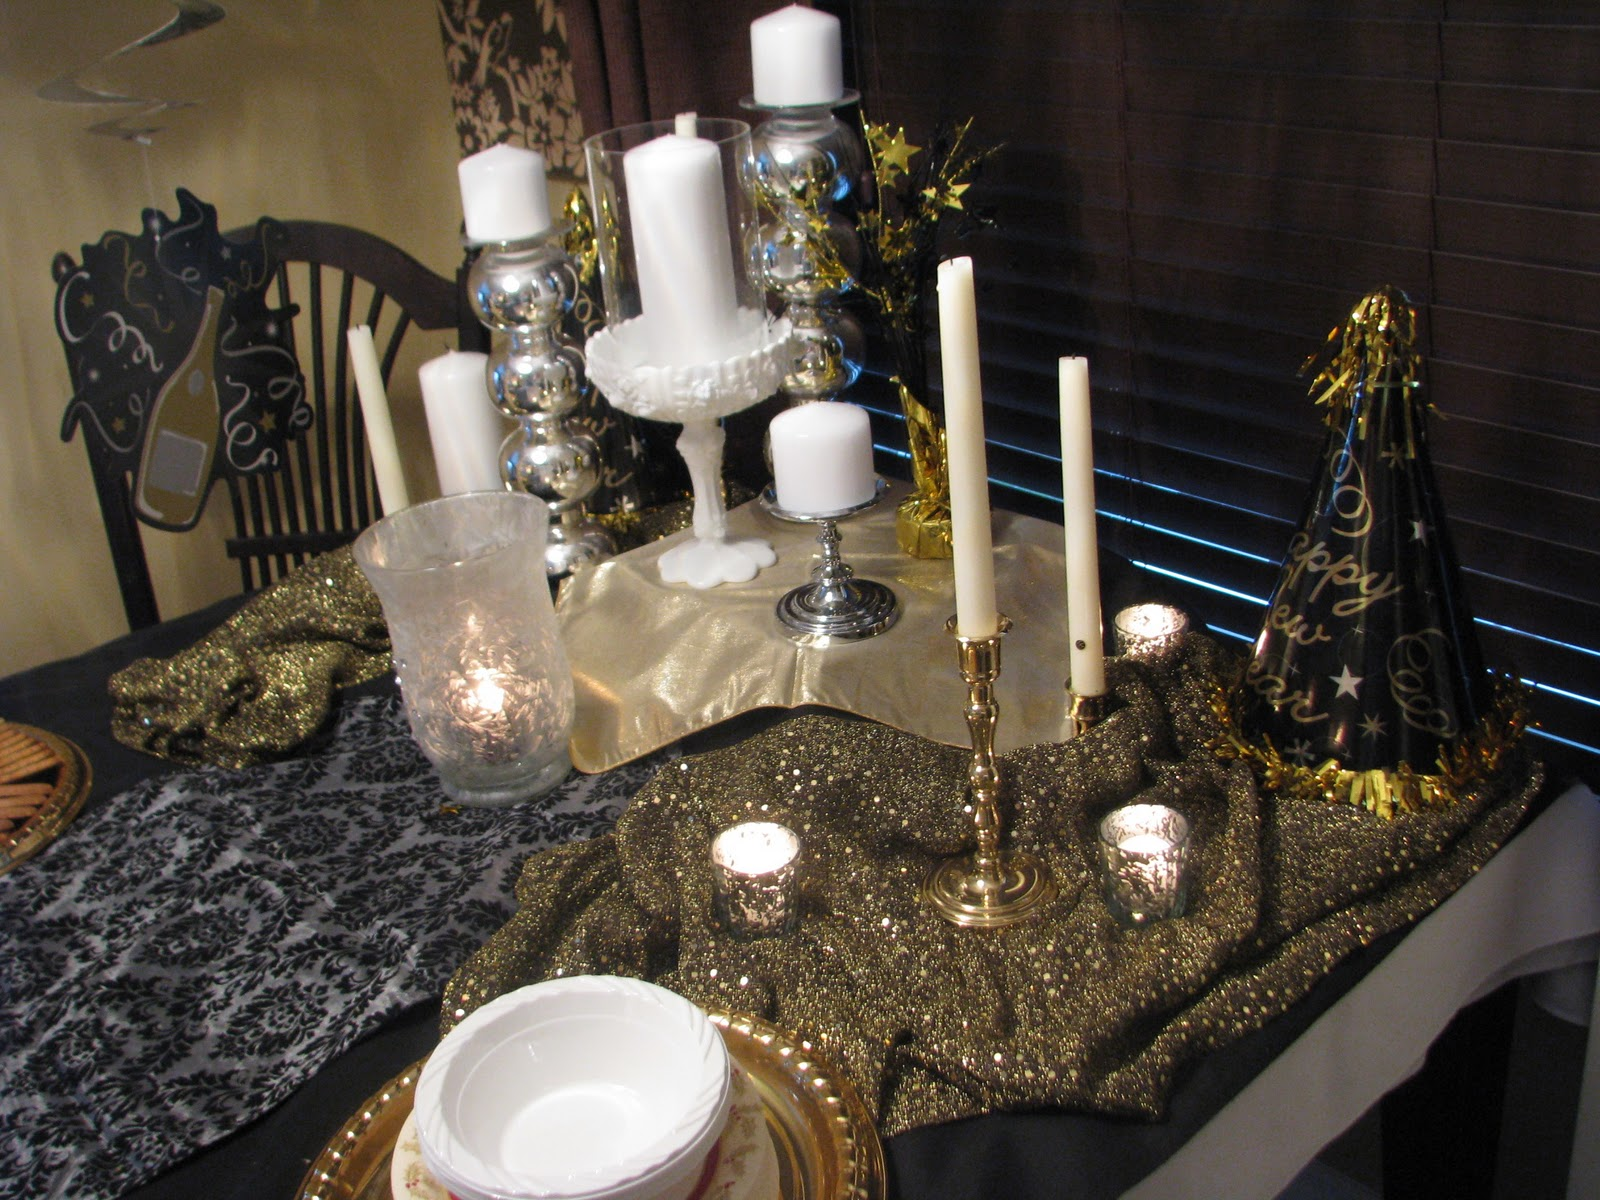 That Would Sparkle On A New Years Table But I Wanted Just Something Little More Trip To Fabricland And Dollarama We Were Off The Races